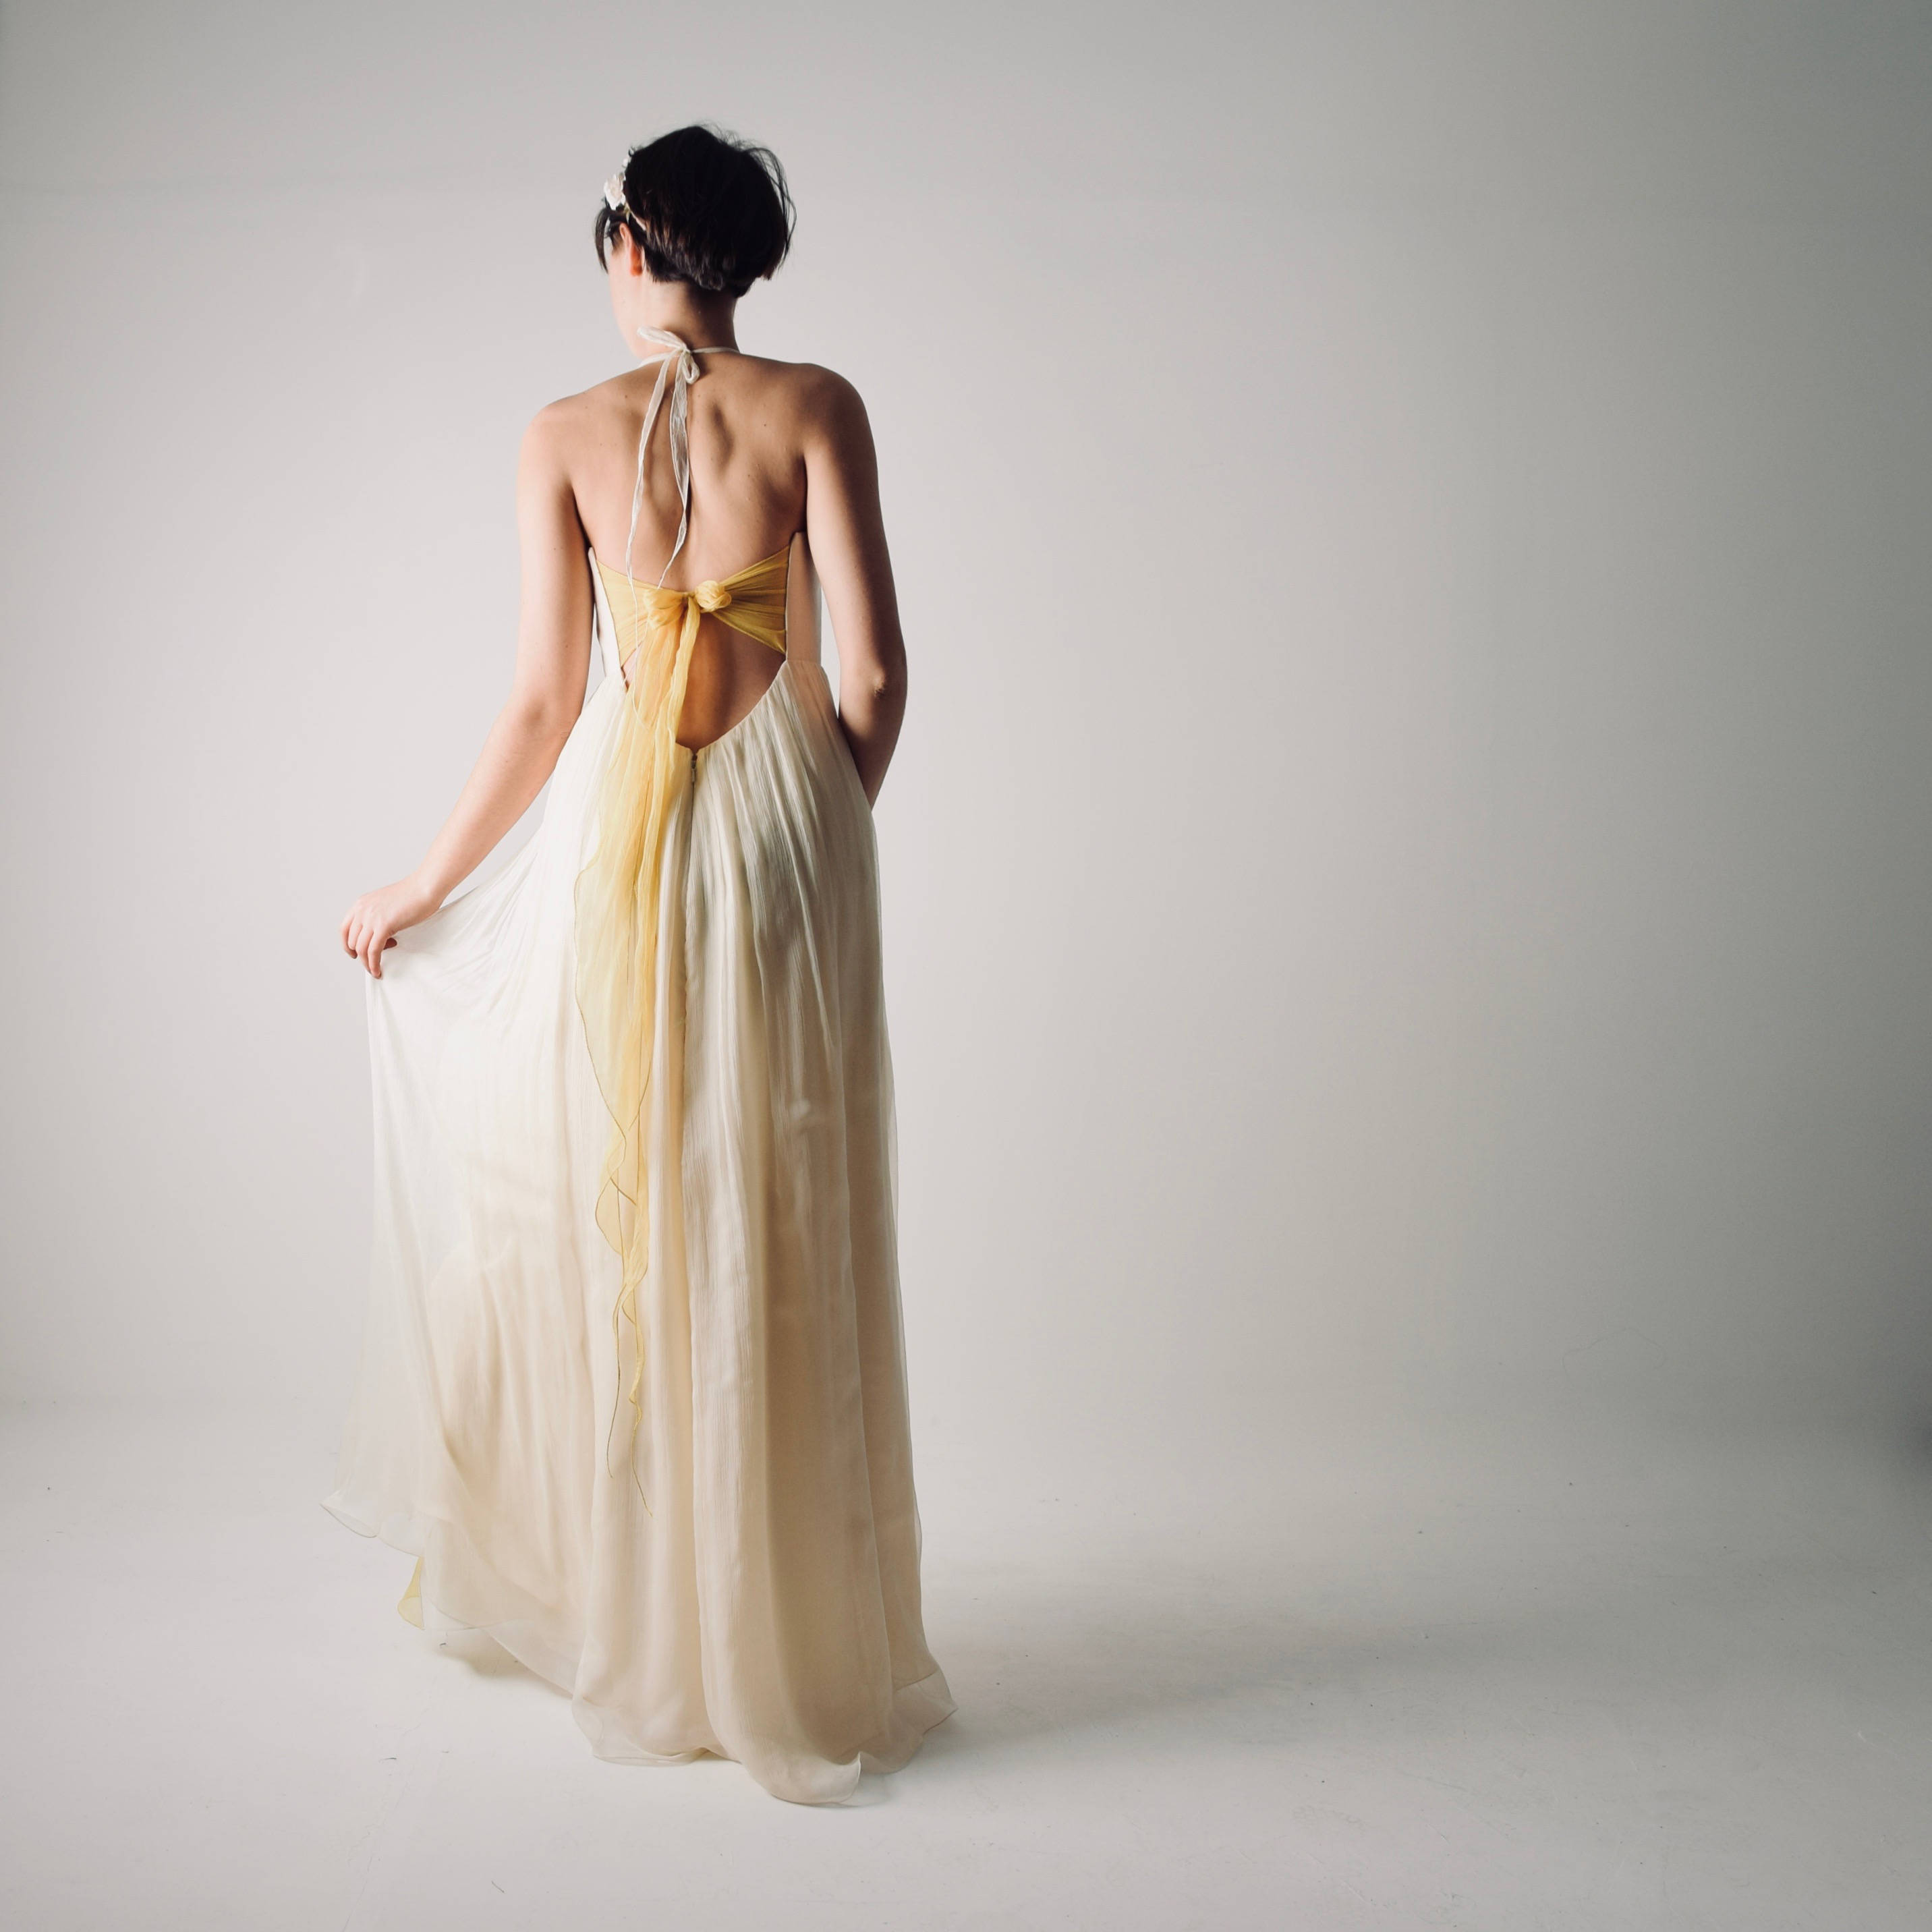 Narcissus summer backless wedding dress in ivory and yellow summer backless wedding dress junglespirit Images